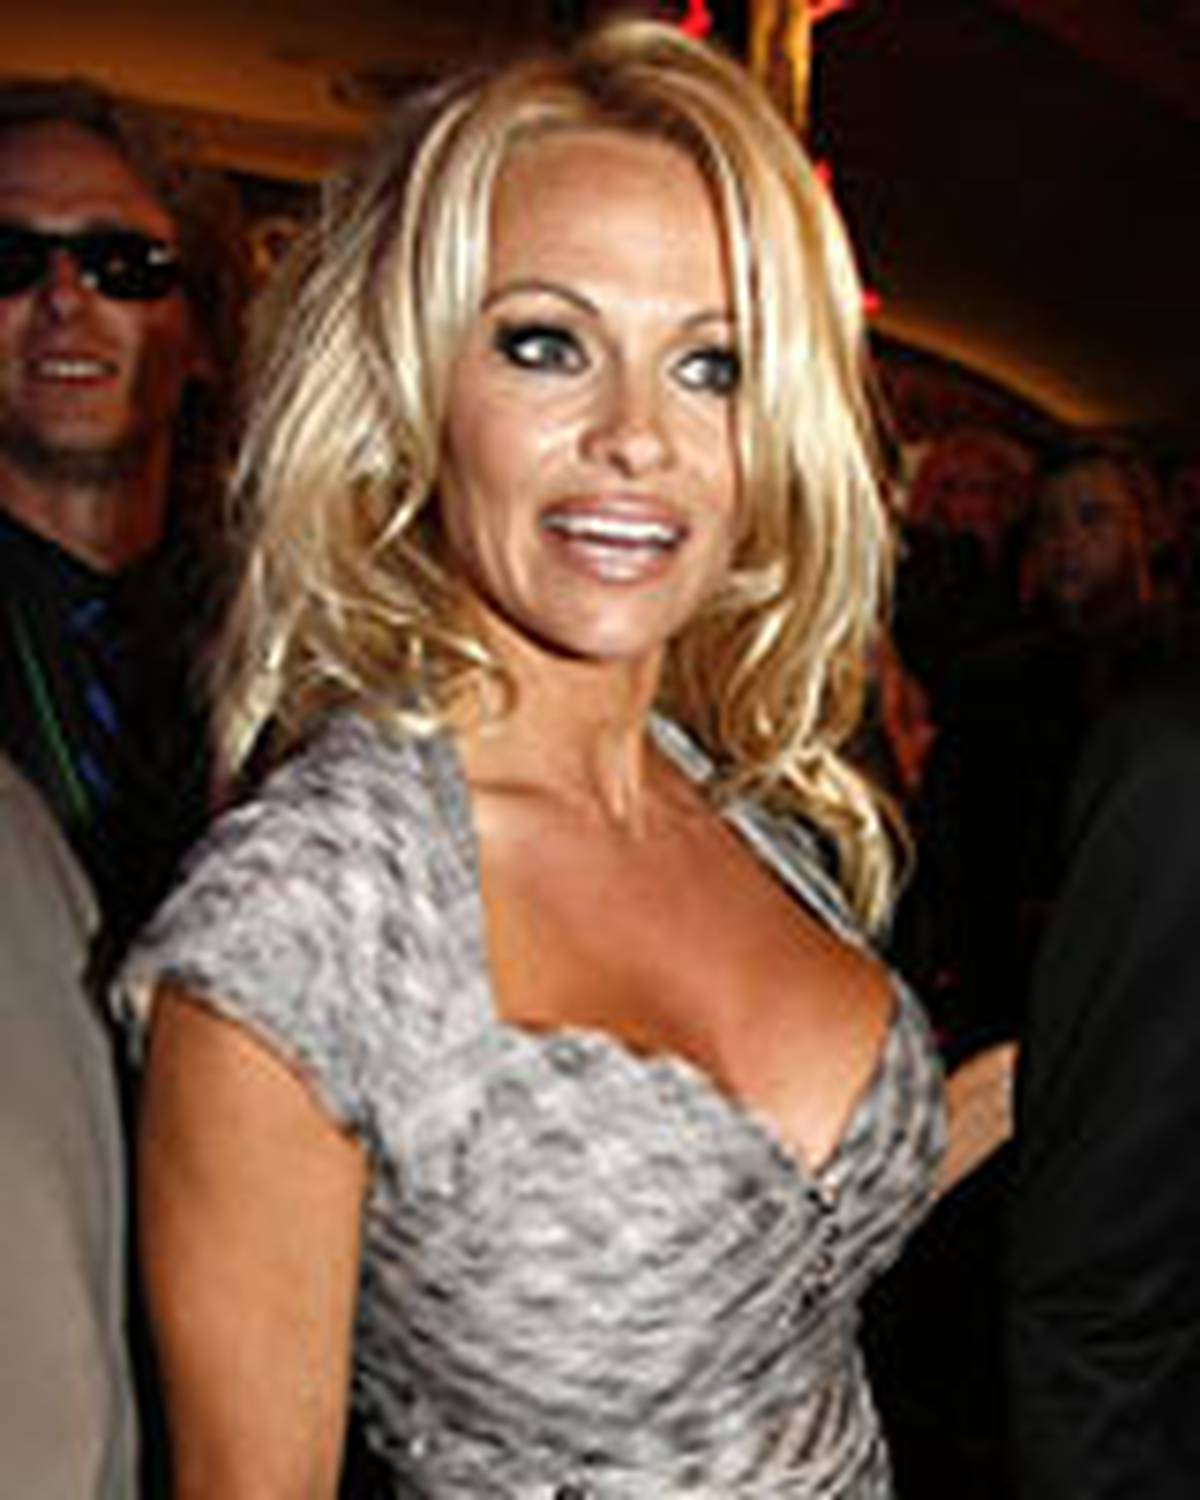 Pam Anderson Sex Tape Porn pamela anderson and hilton's sex tape partner 'to wed' - nz